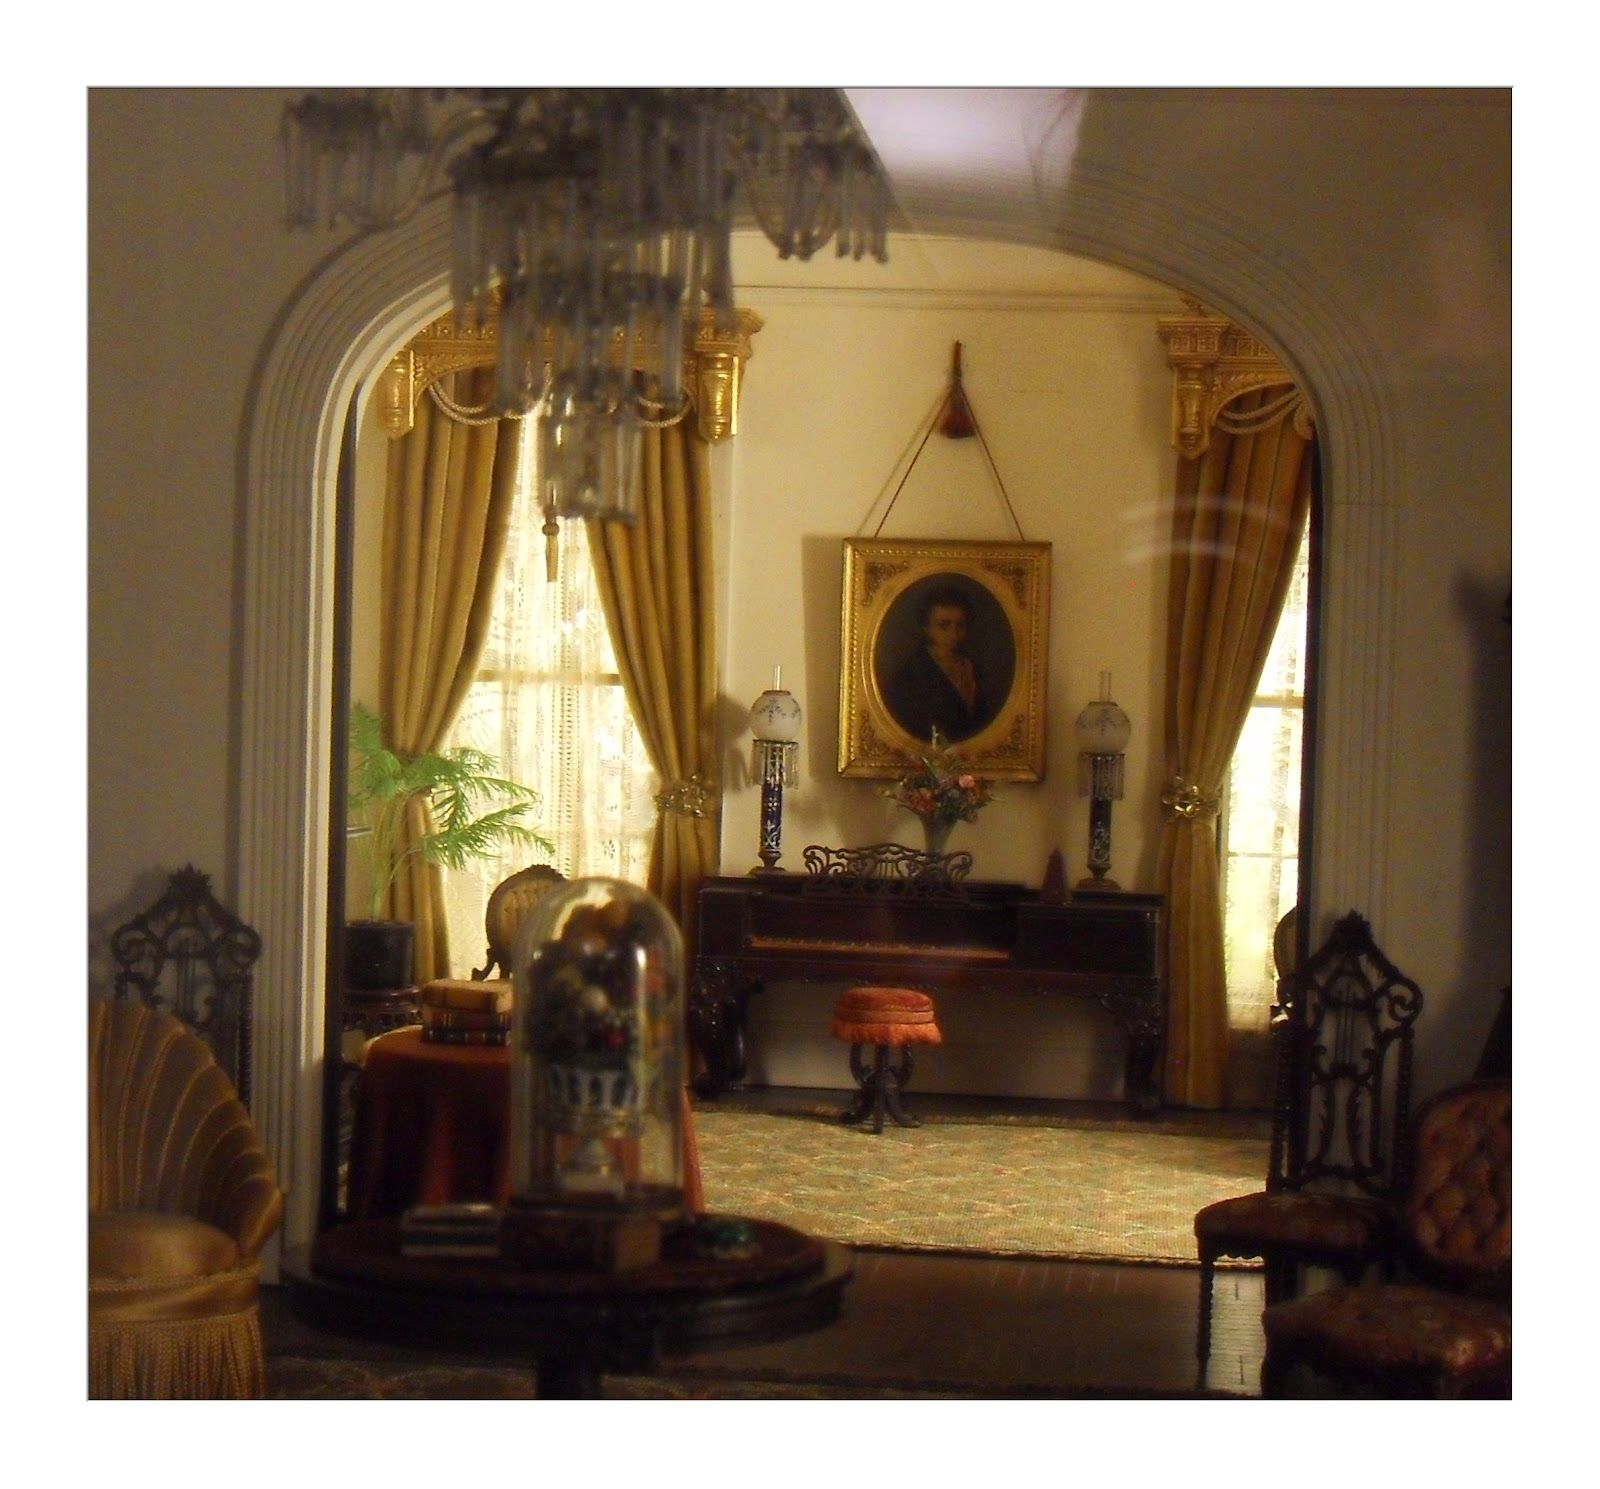 Dollhouse Miniatures Chicago: Narcissa Niblack Thorne Miniature Room At Art Institute Of